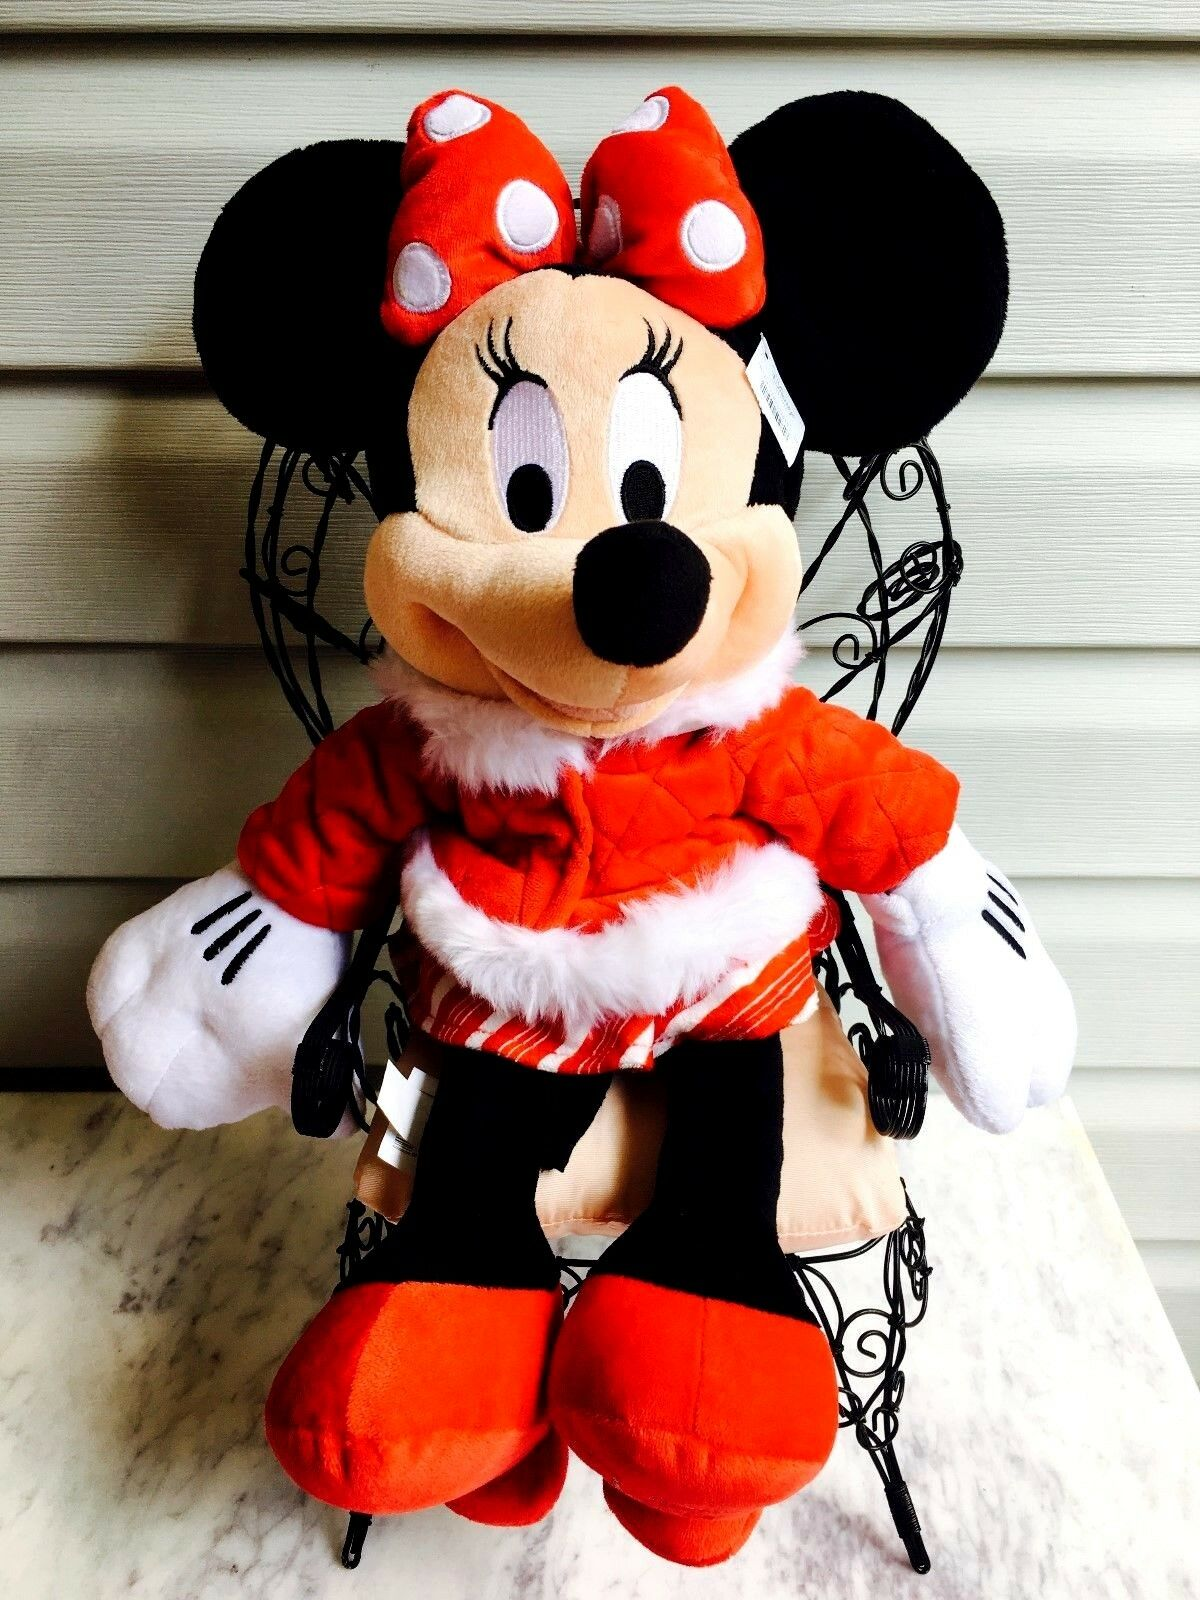 Disney Store Trim Minnie Mouse Plush 17''